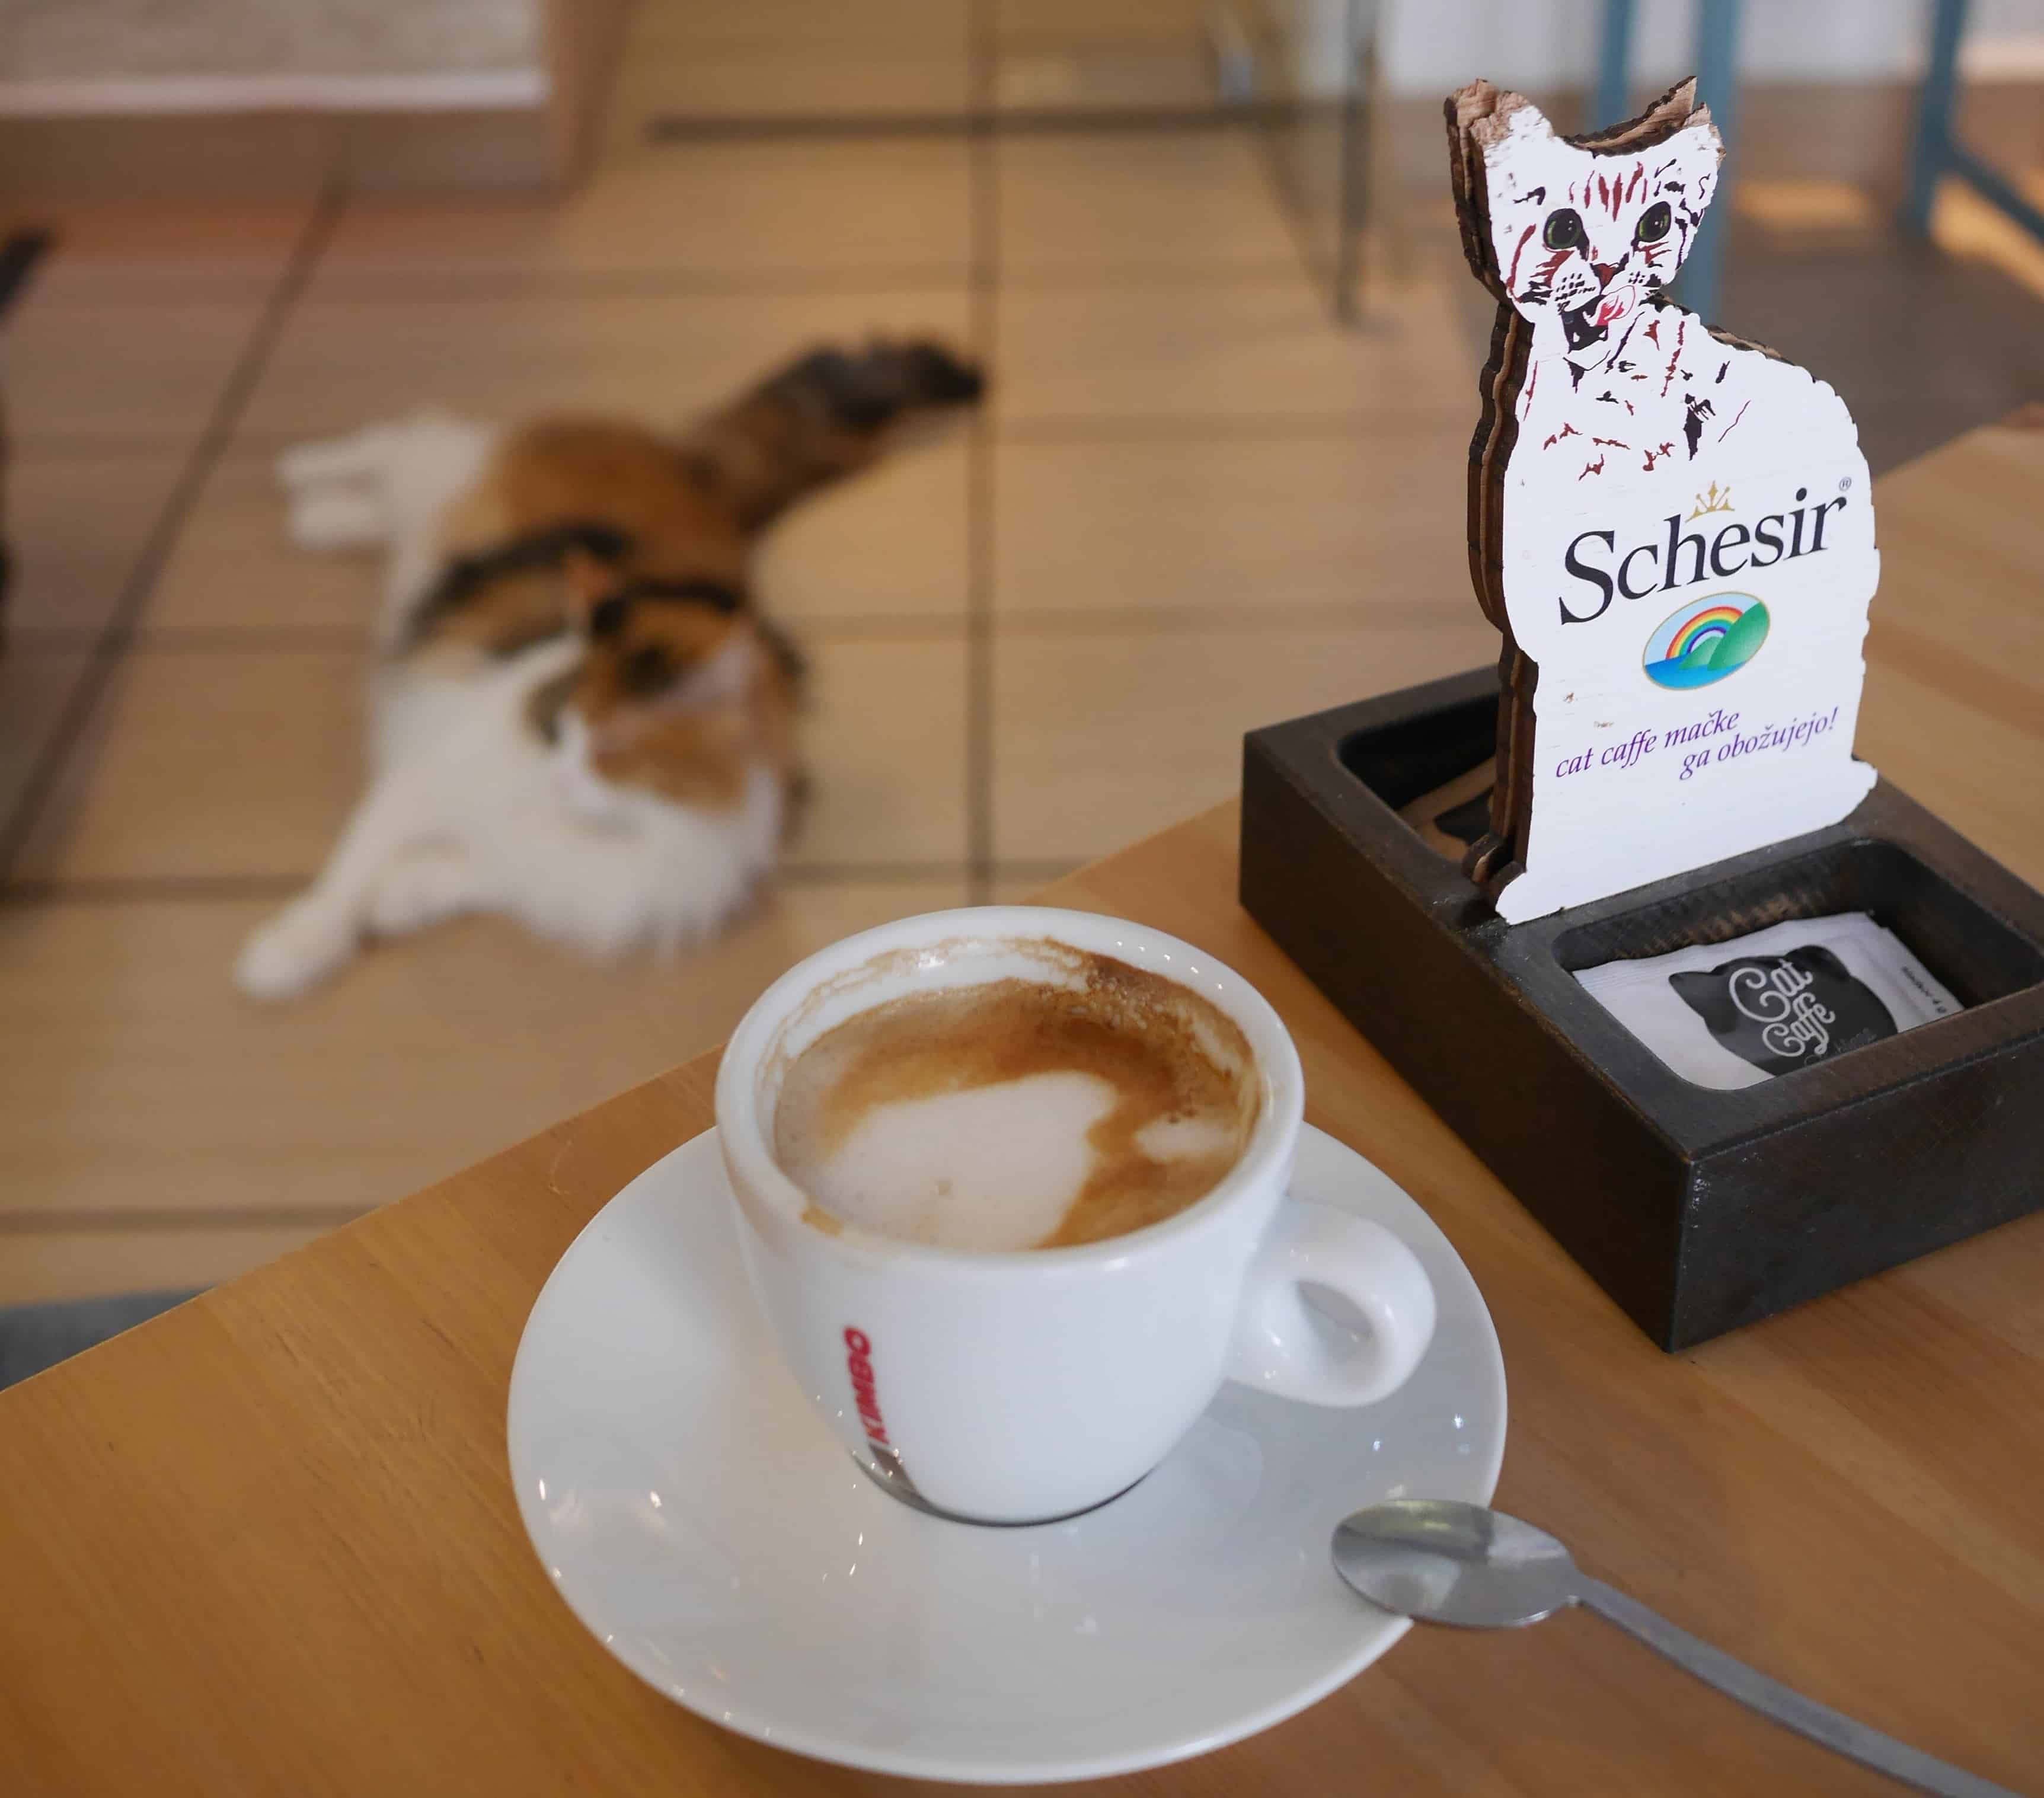 Cat Café - Top Family-friendly Places to Visit in Seoul